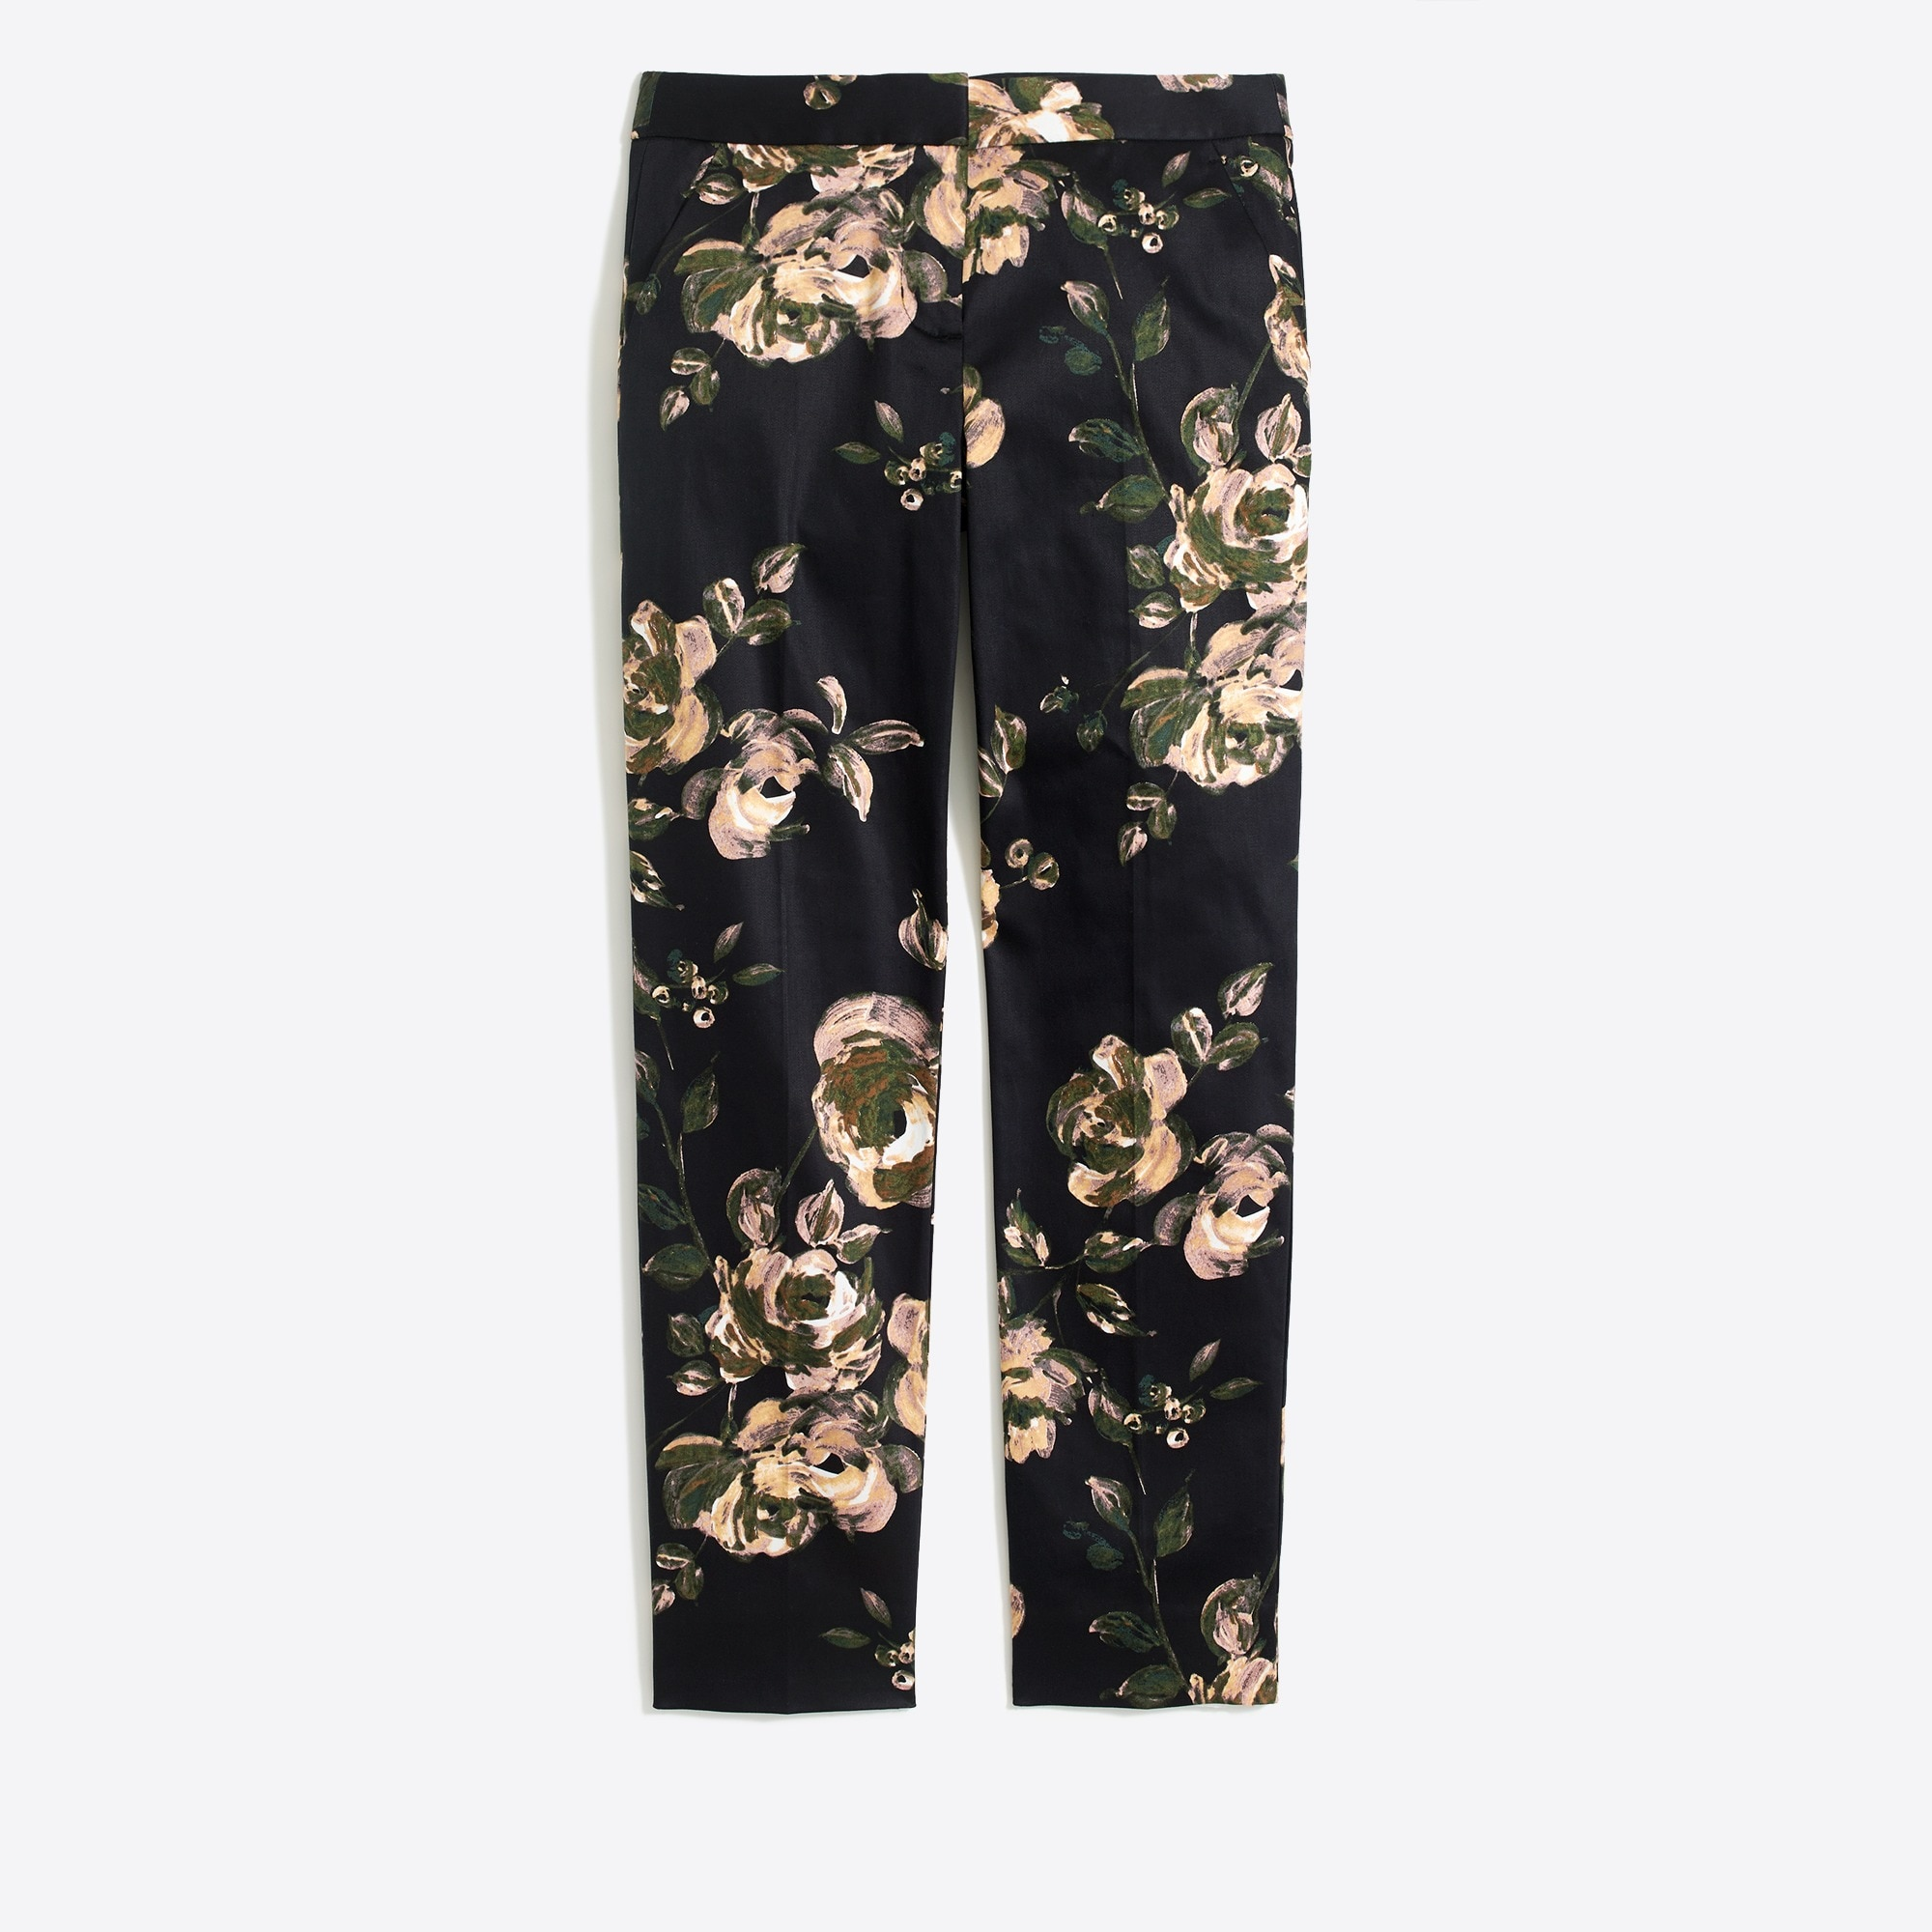 Image 2 for Slim crop printed pant